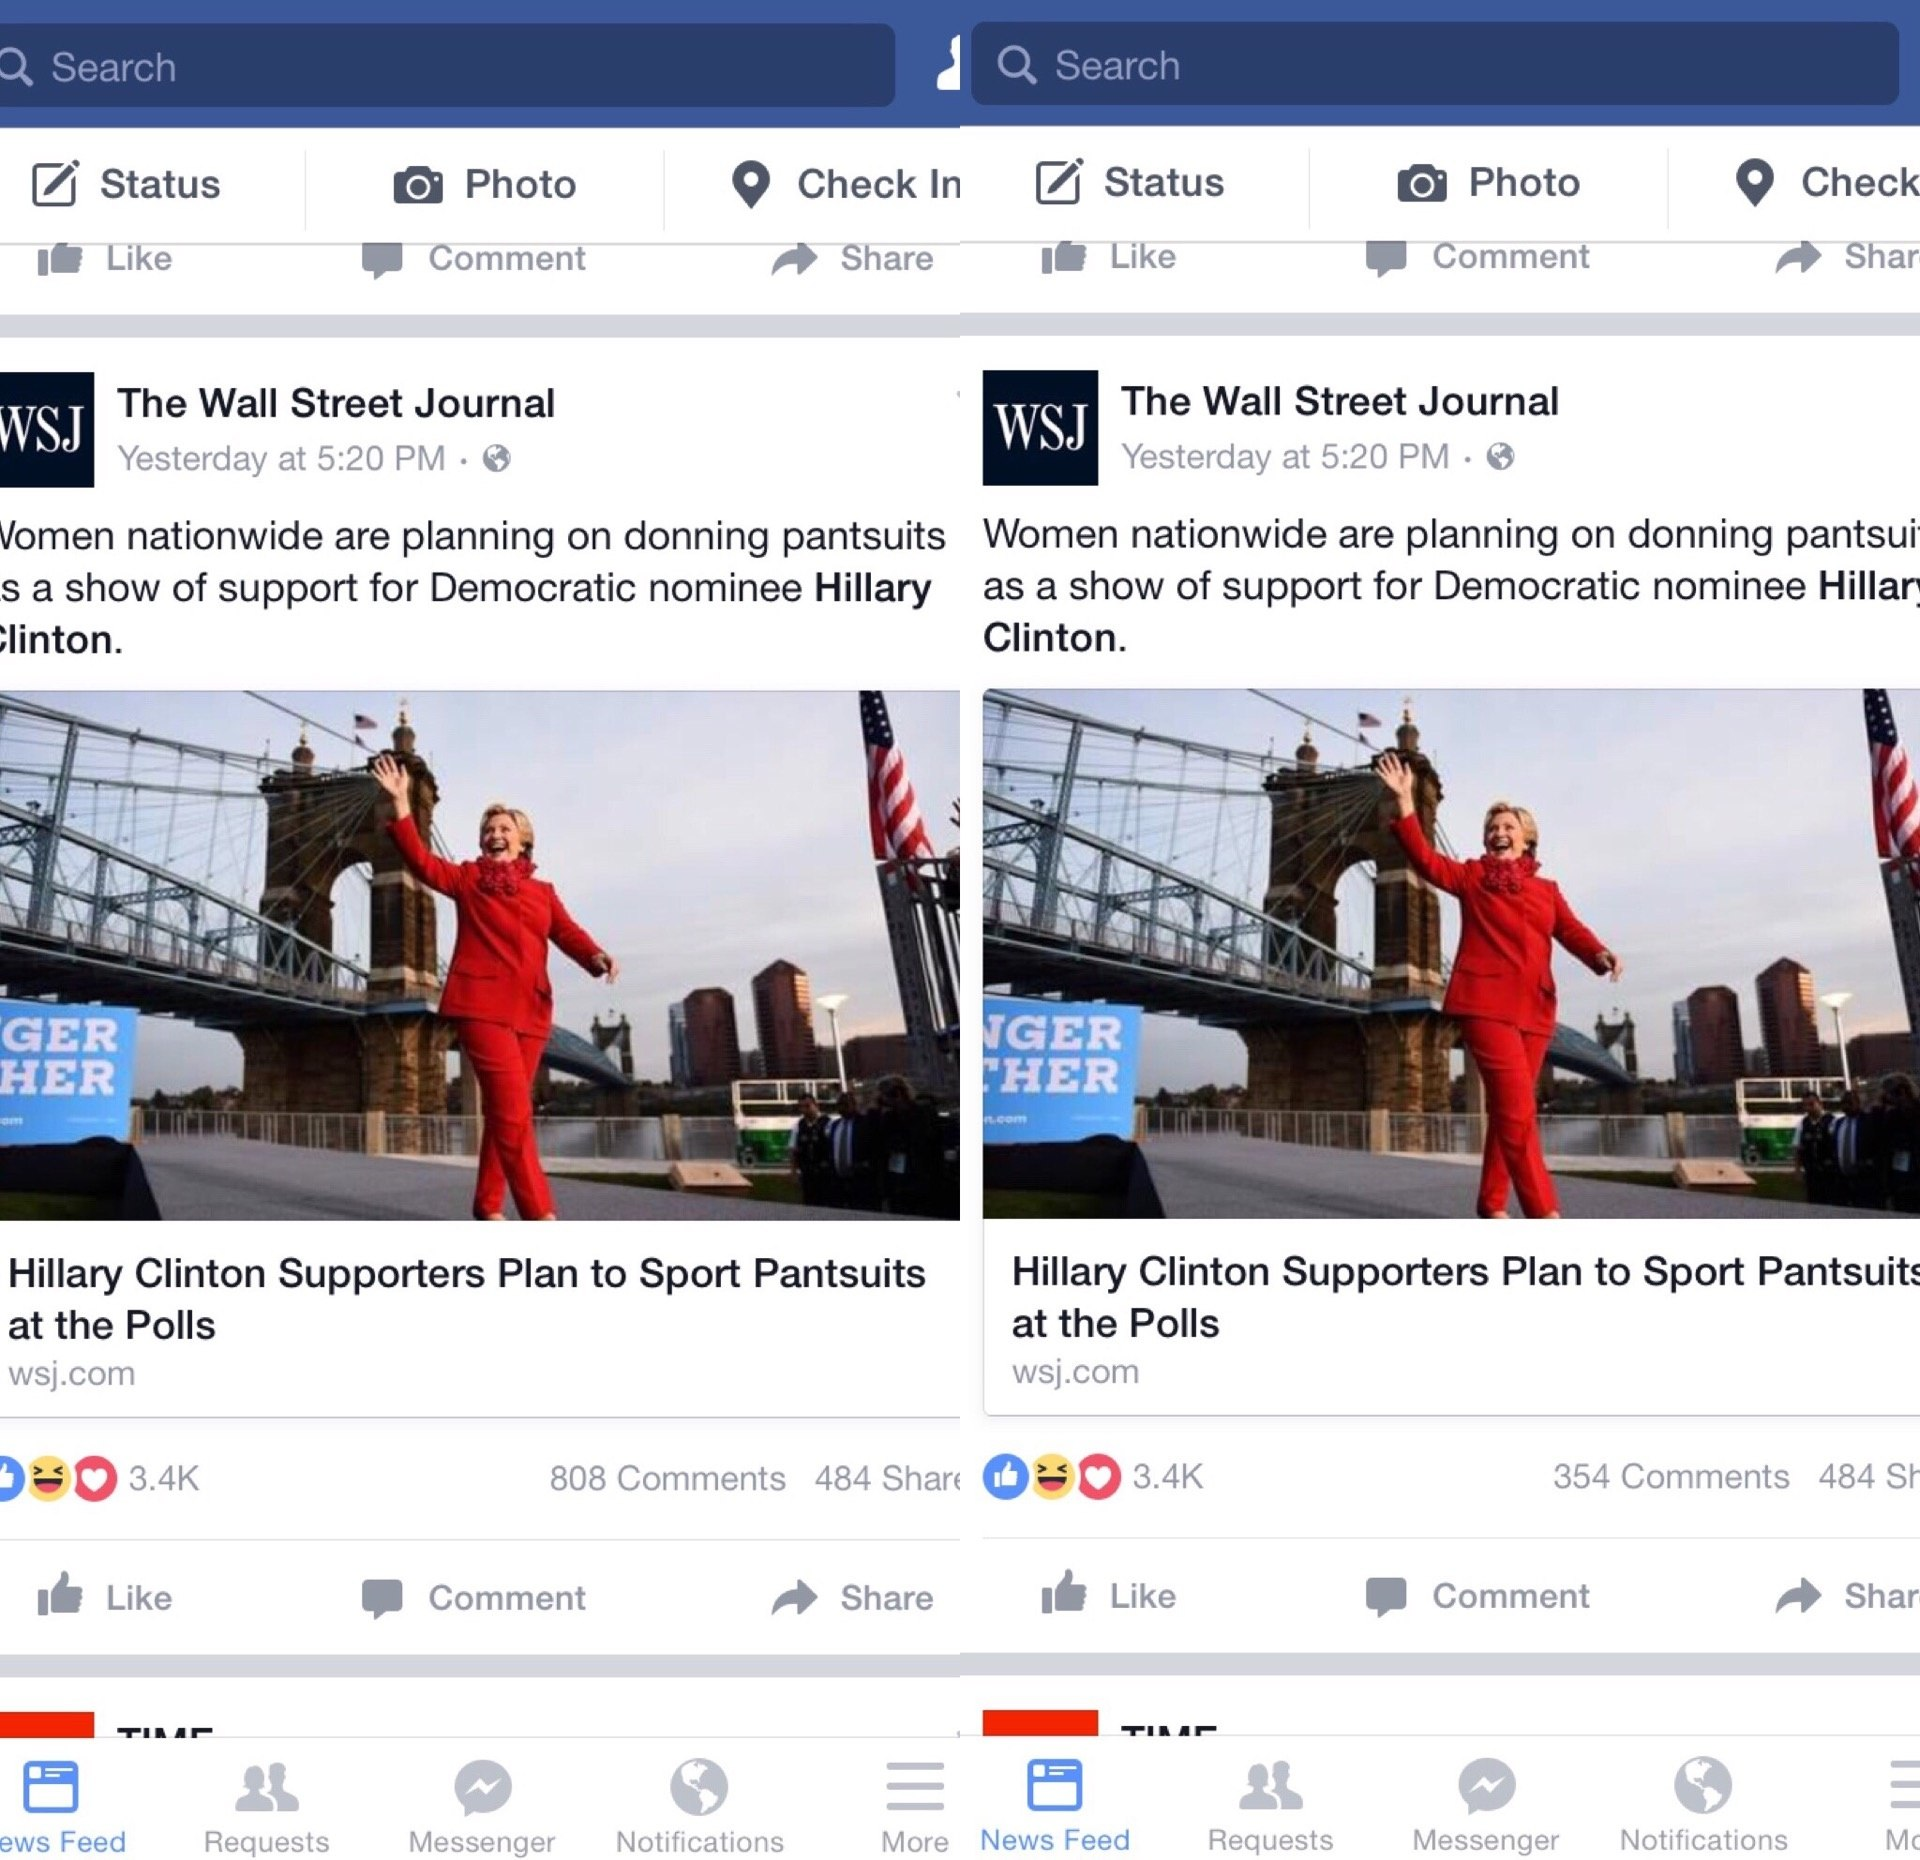 facebook comments disappear and reappear